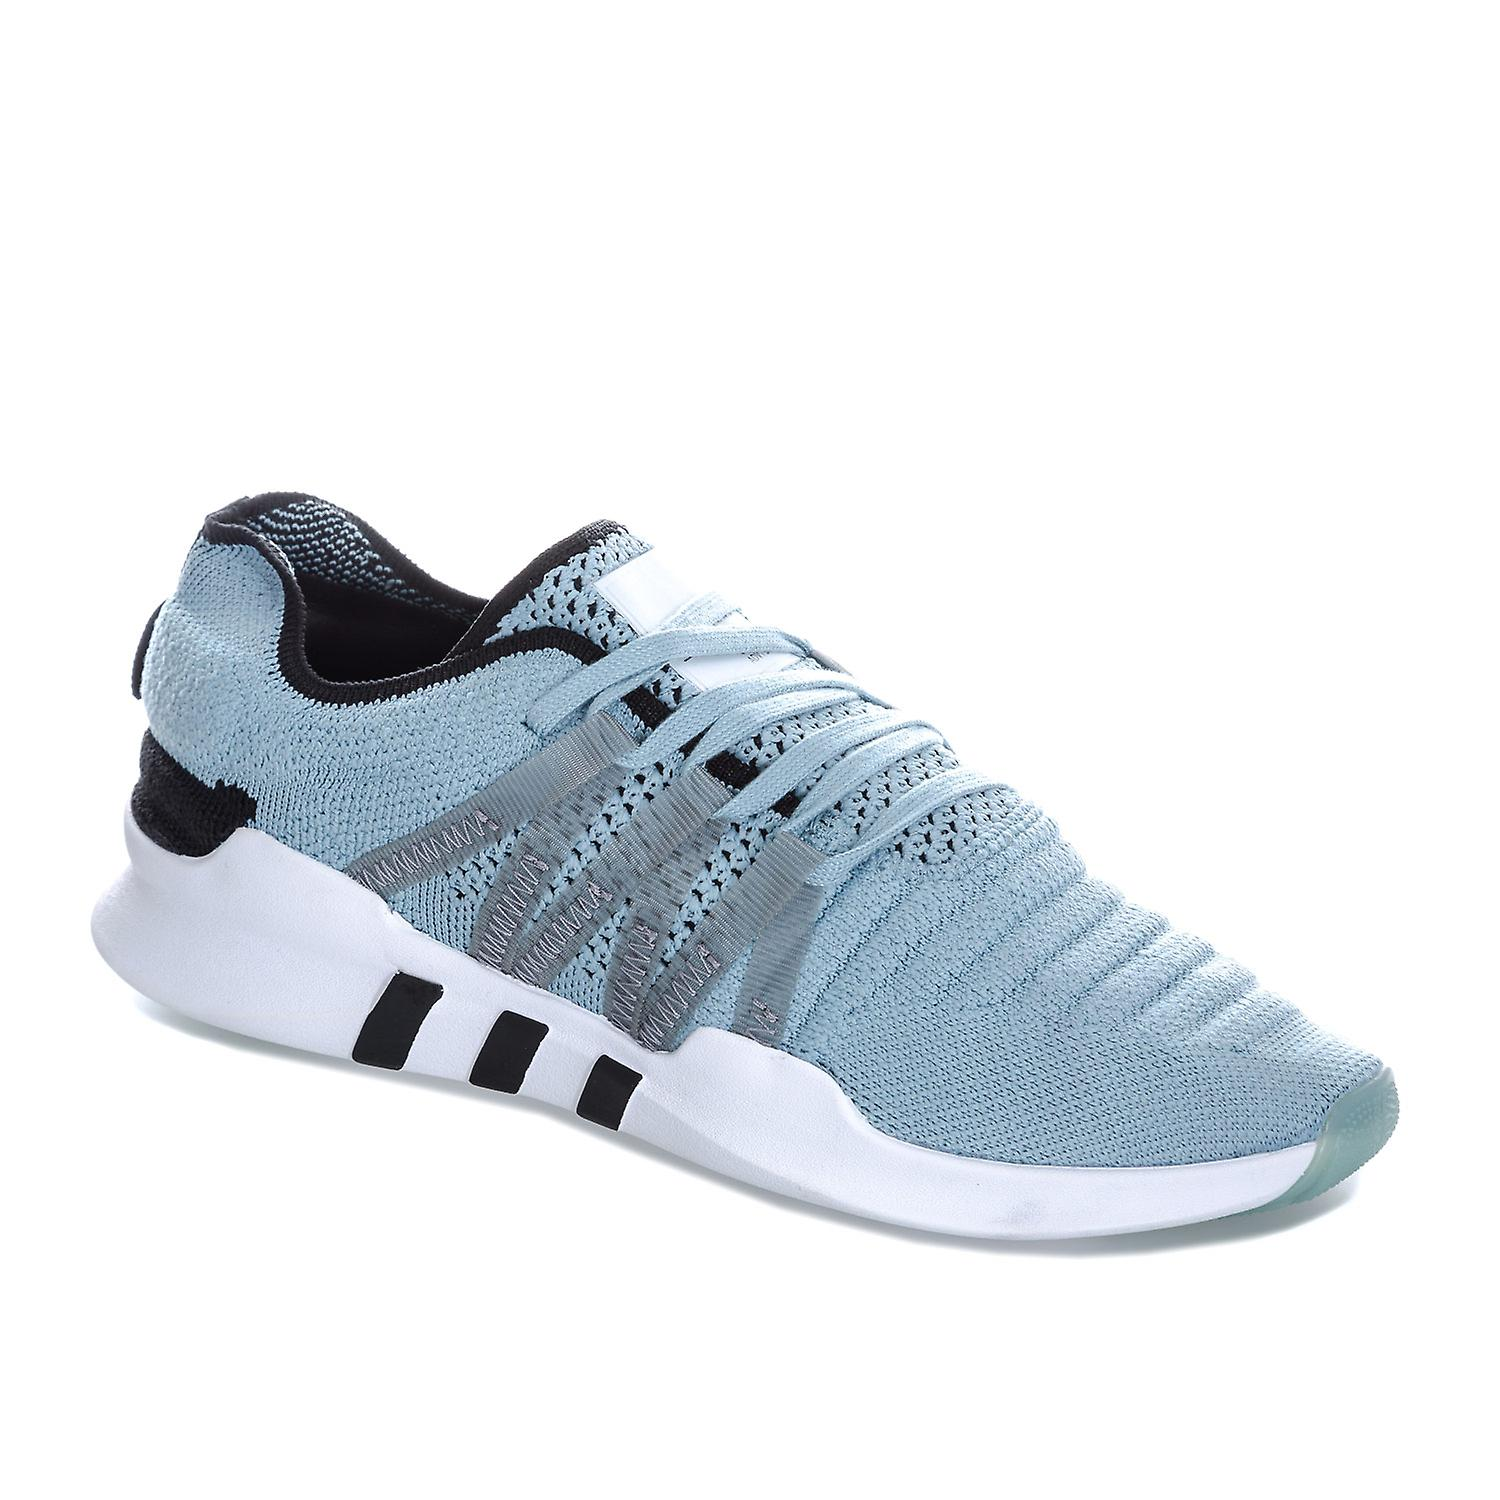 the latest f16a4 2ce40 Womens adidas Originals Eqt Racing Adv Pk Trainers In Blue Tint, Grey Three,